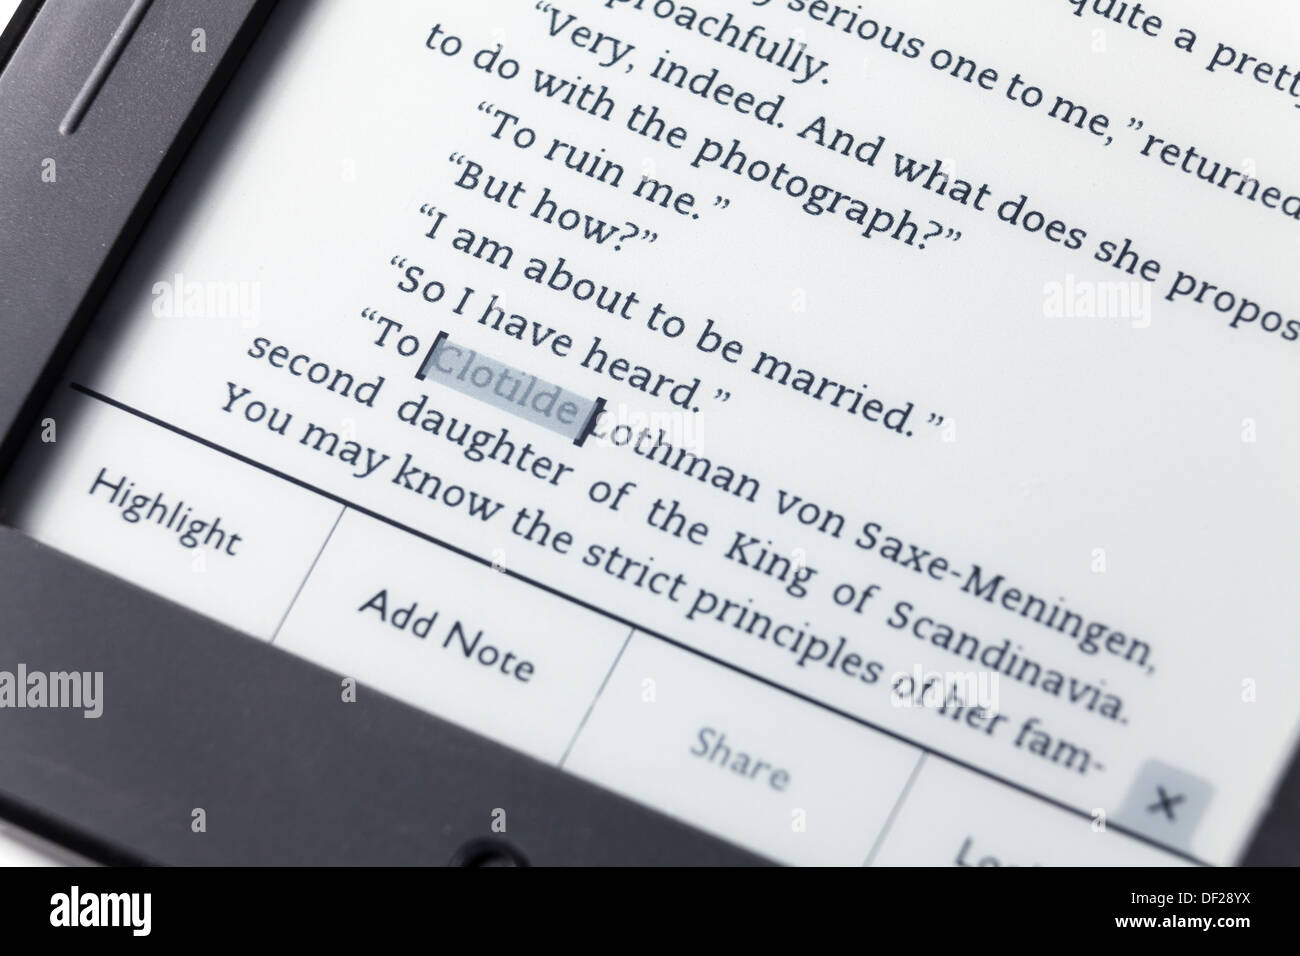 close up highlight add note menu on Nook EReader - Stock Image